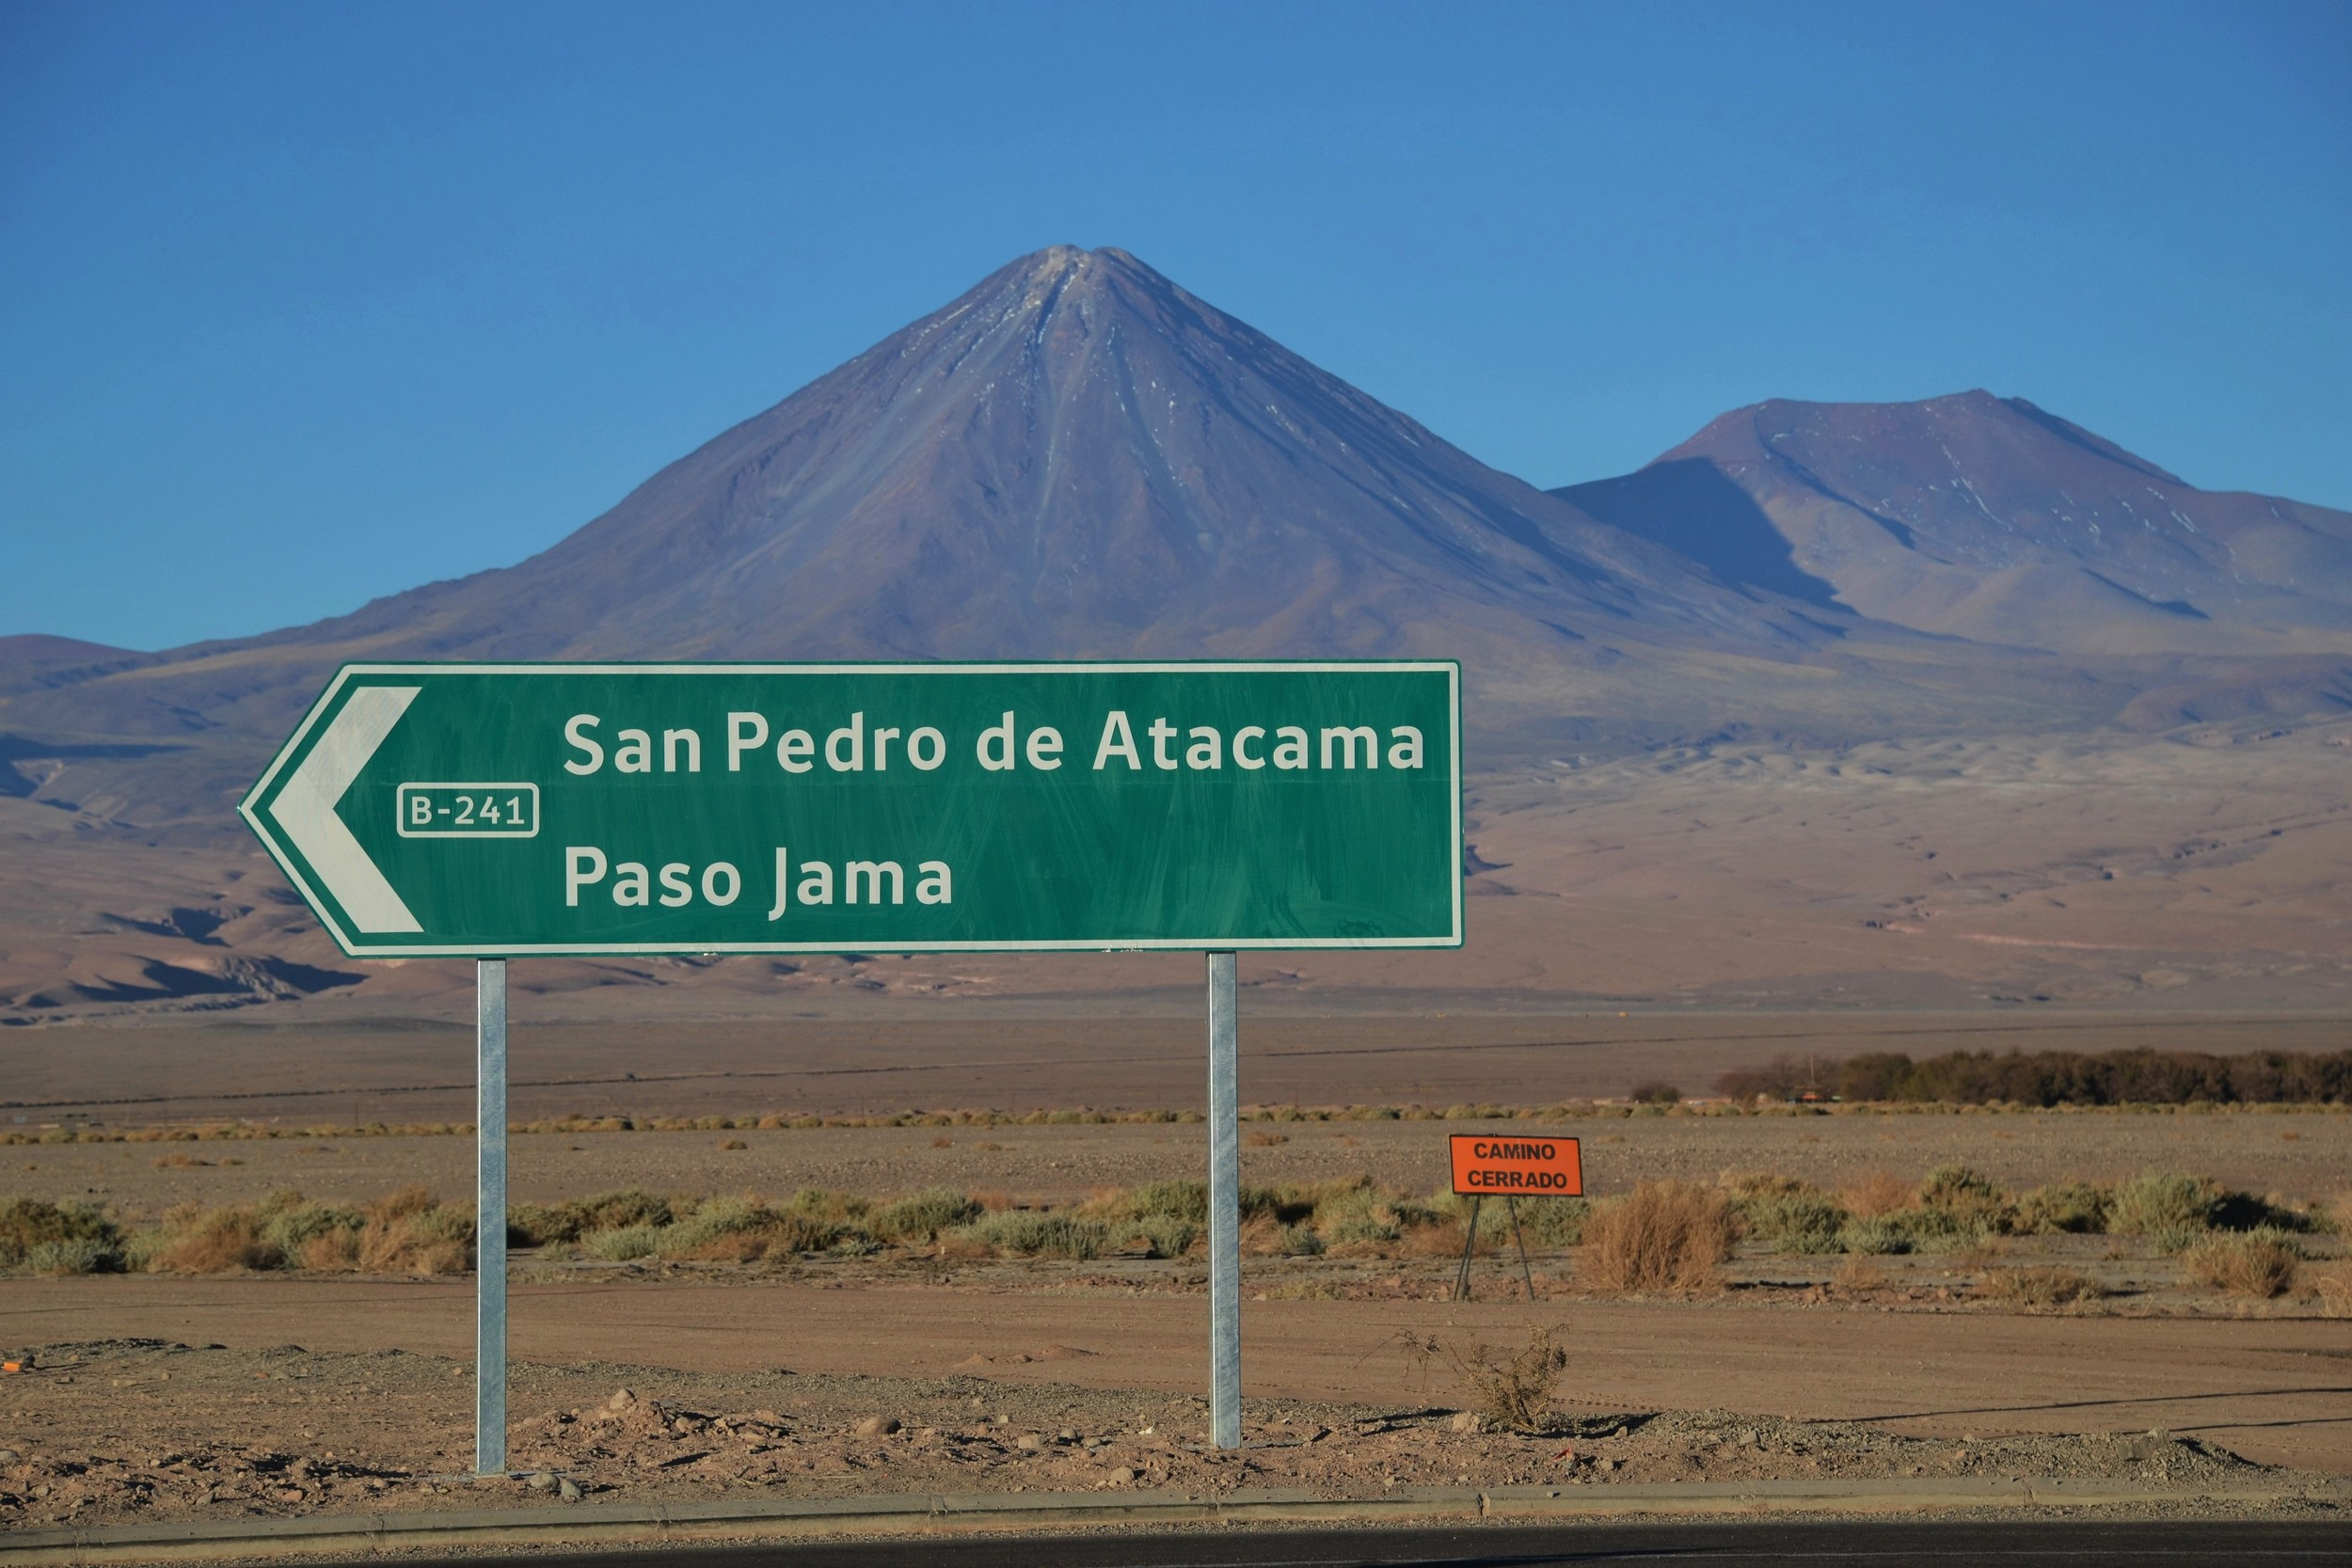 The road to San Pedro.